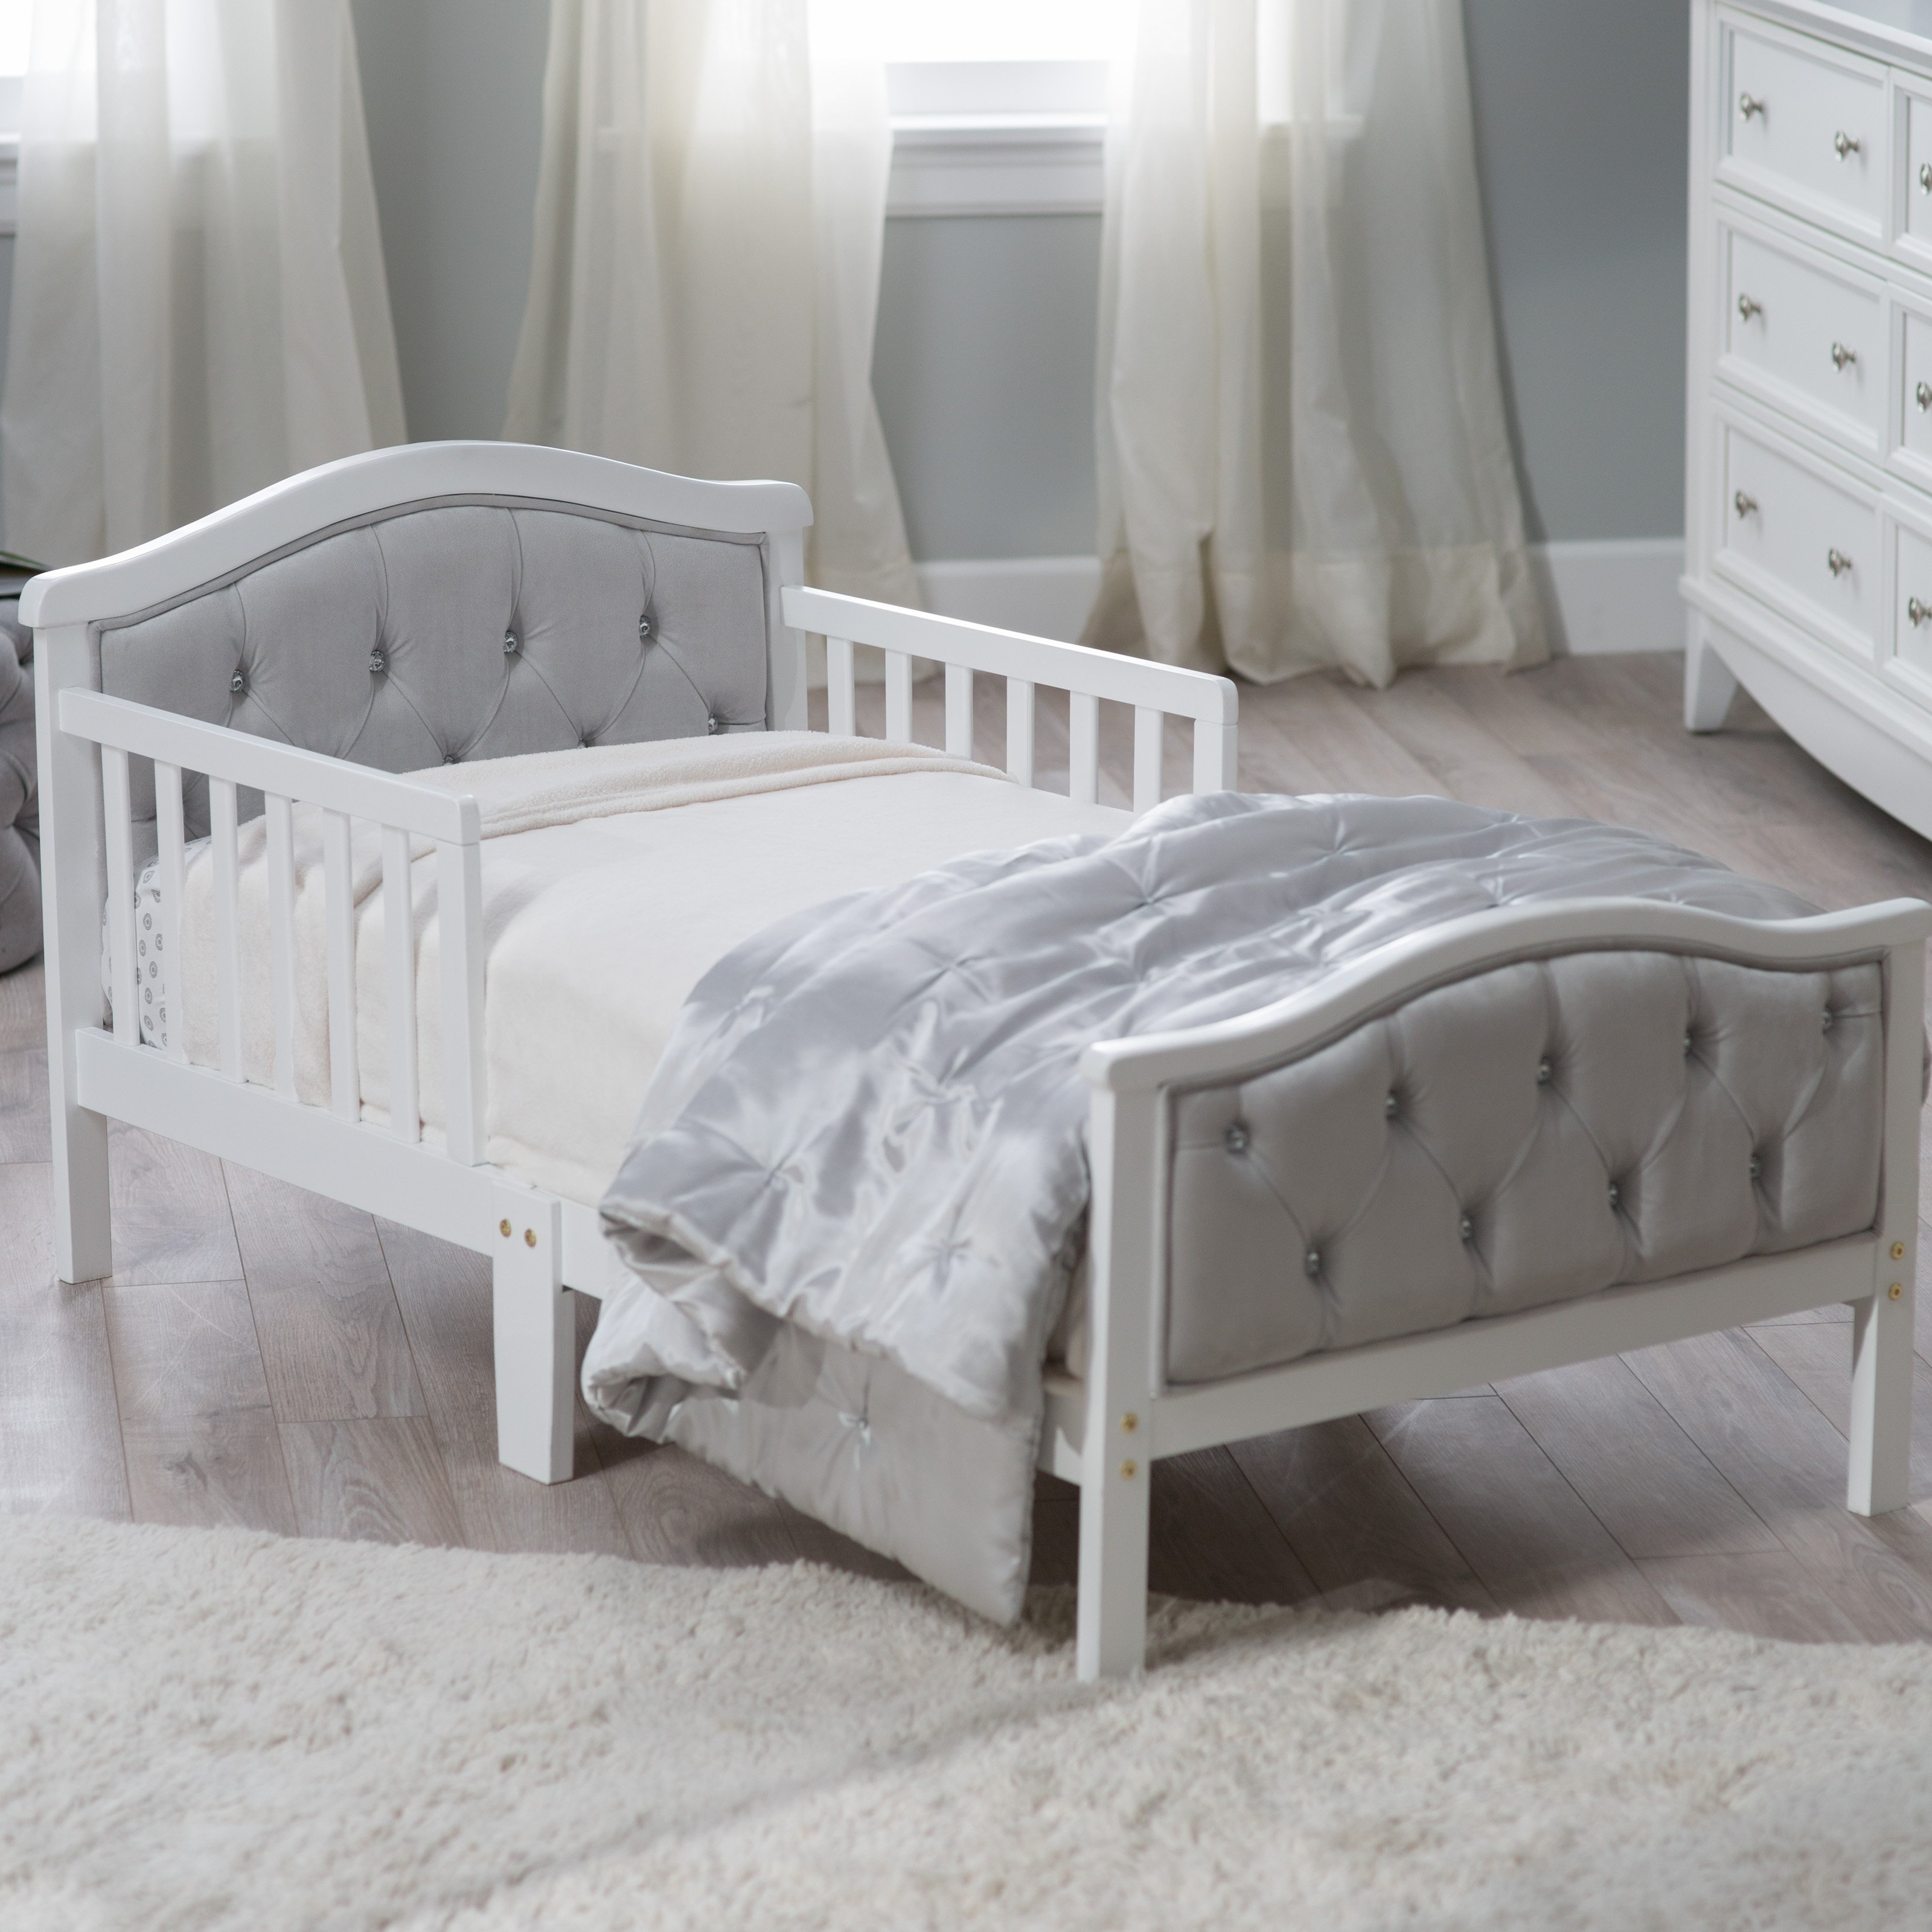 toddler beds orbelle upholstered toddler bed - gray/french white | hayneedle IQVWKYP